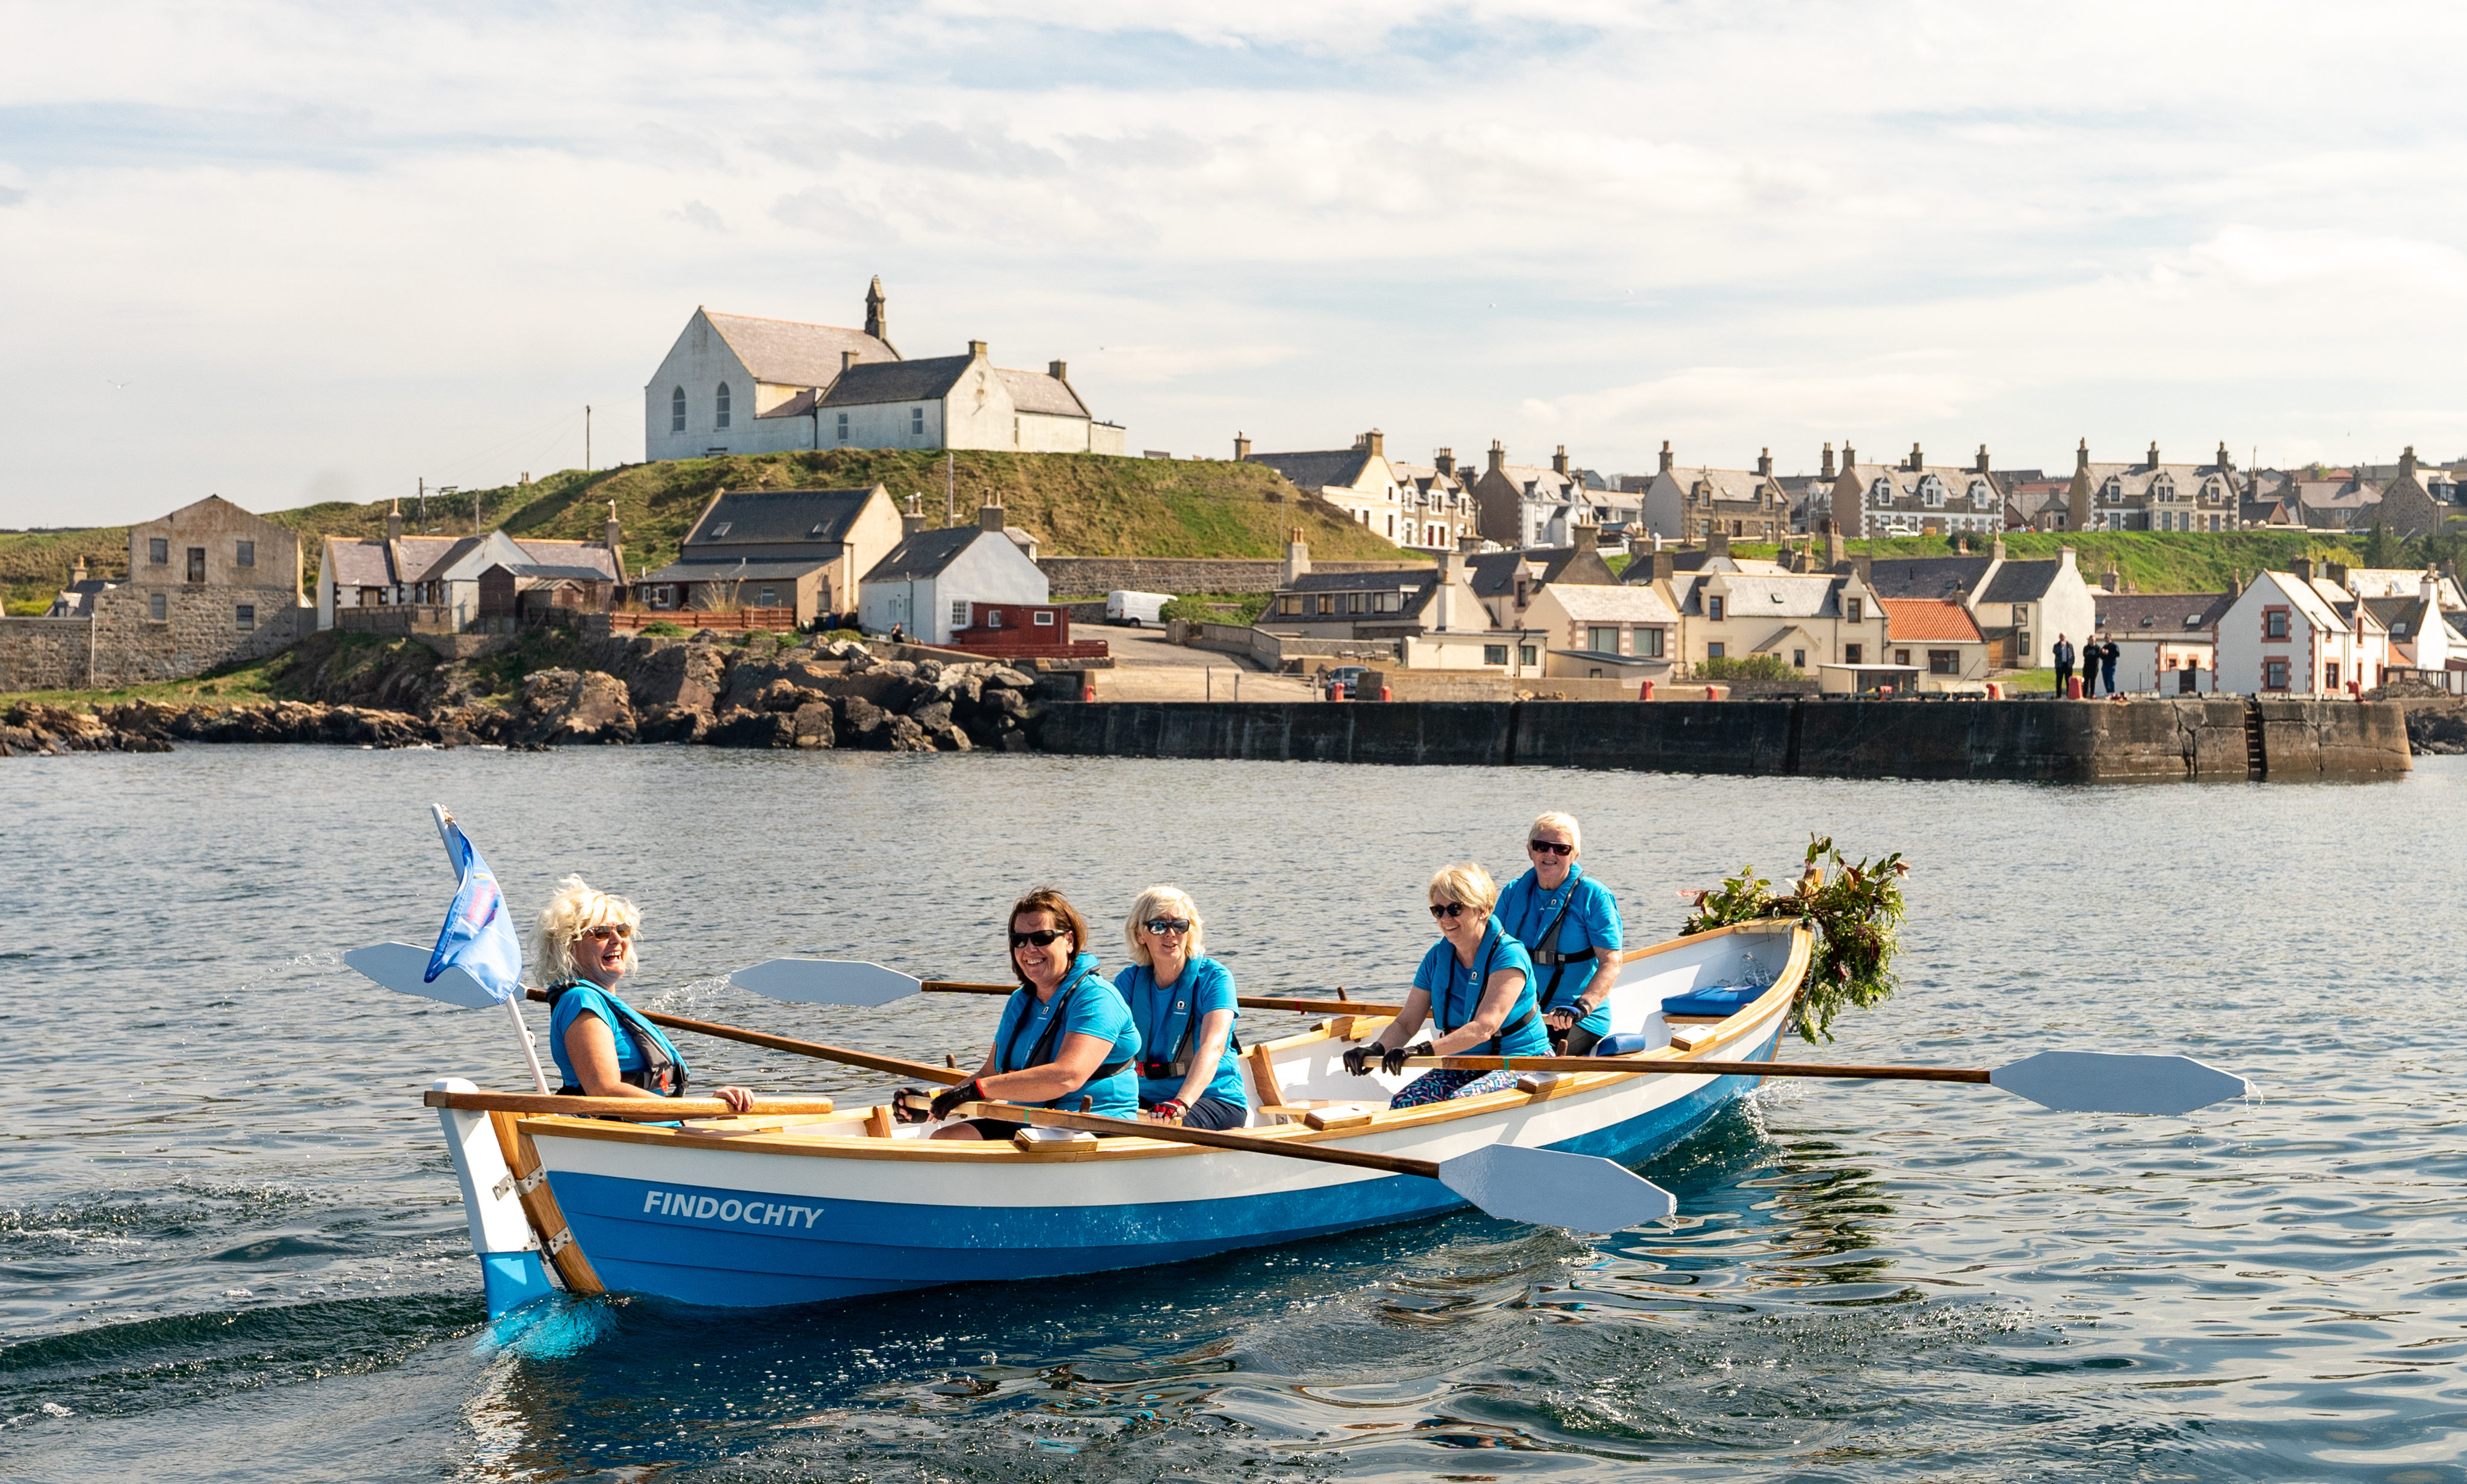 Findochty Rowing Club launching its new skiff that it has spent the last year building.